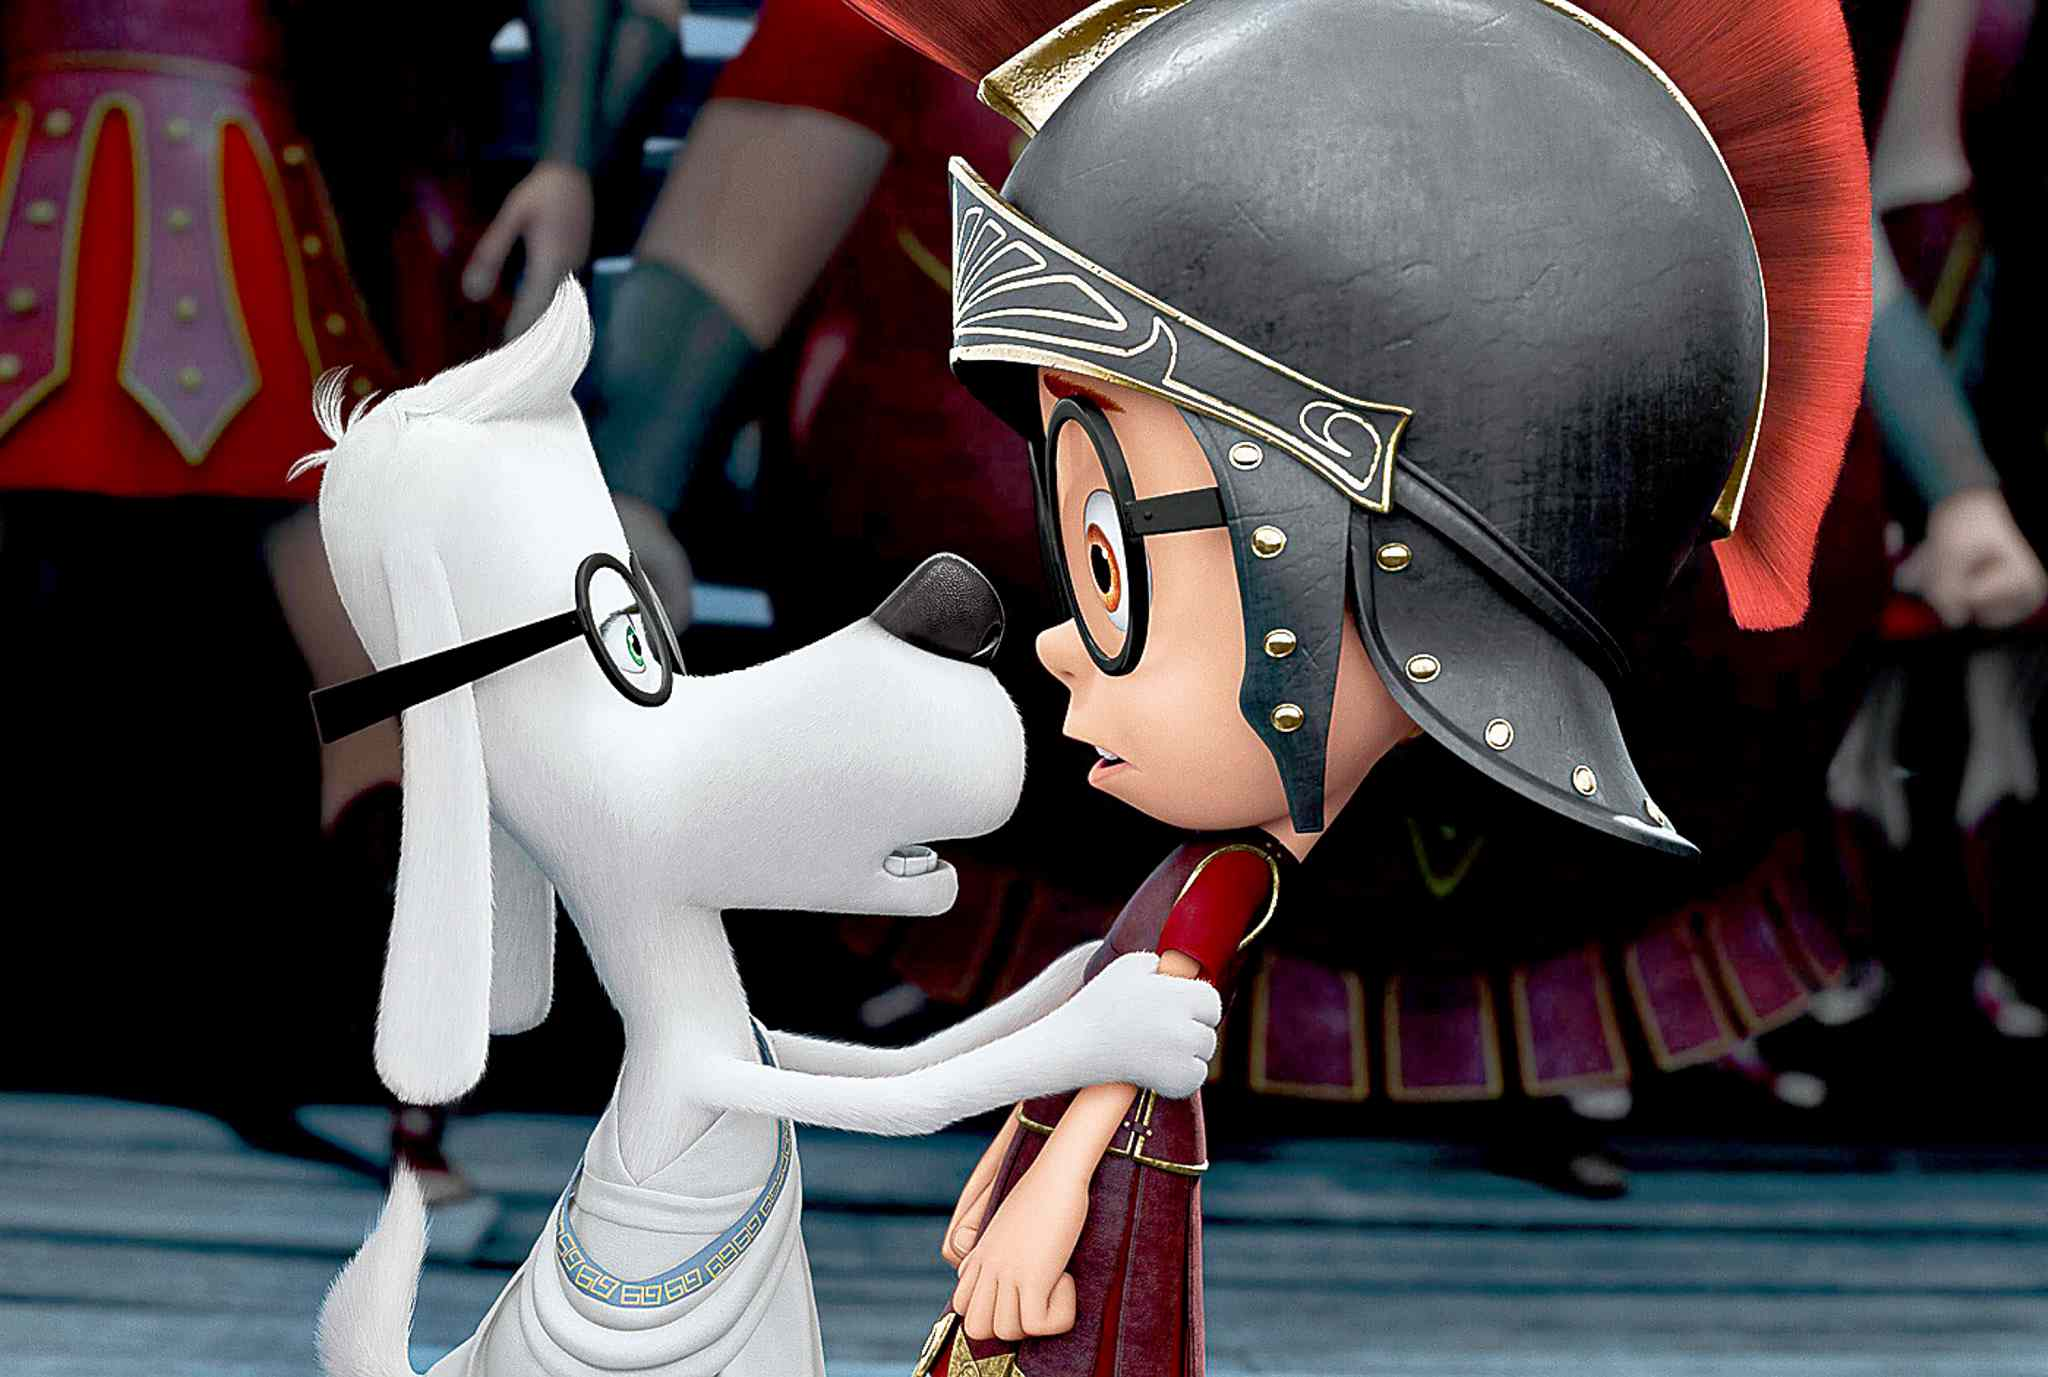 This image released by DreamWorks Animation shows Sherman, voiced by Max Charles, right, and Mr. Peabody, voiced by Ty Burell, in a scene from Mr. Peabody & Sherman.